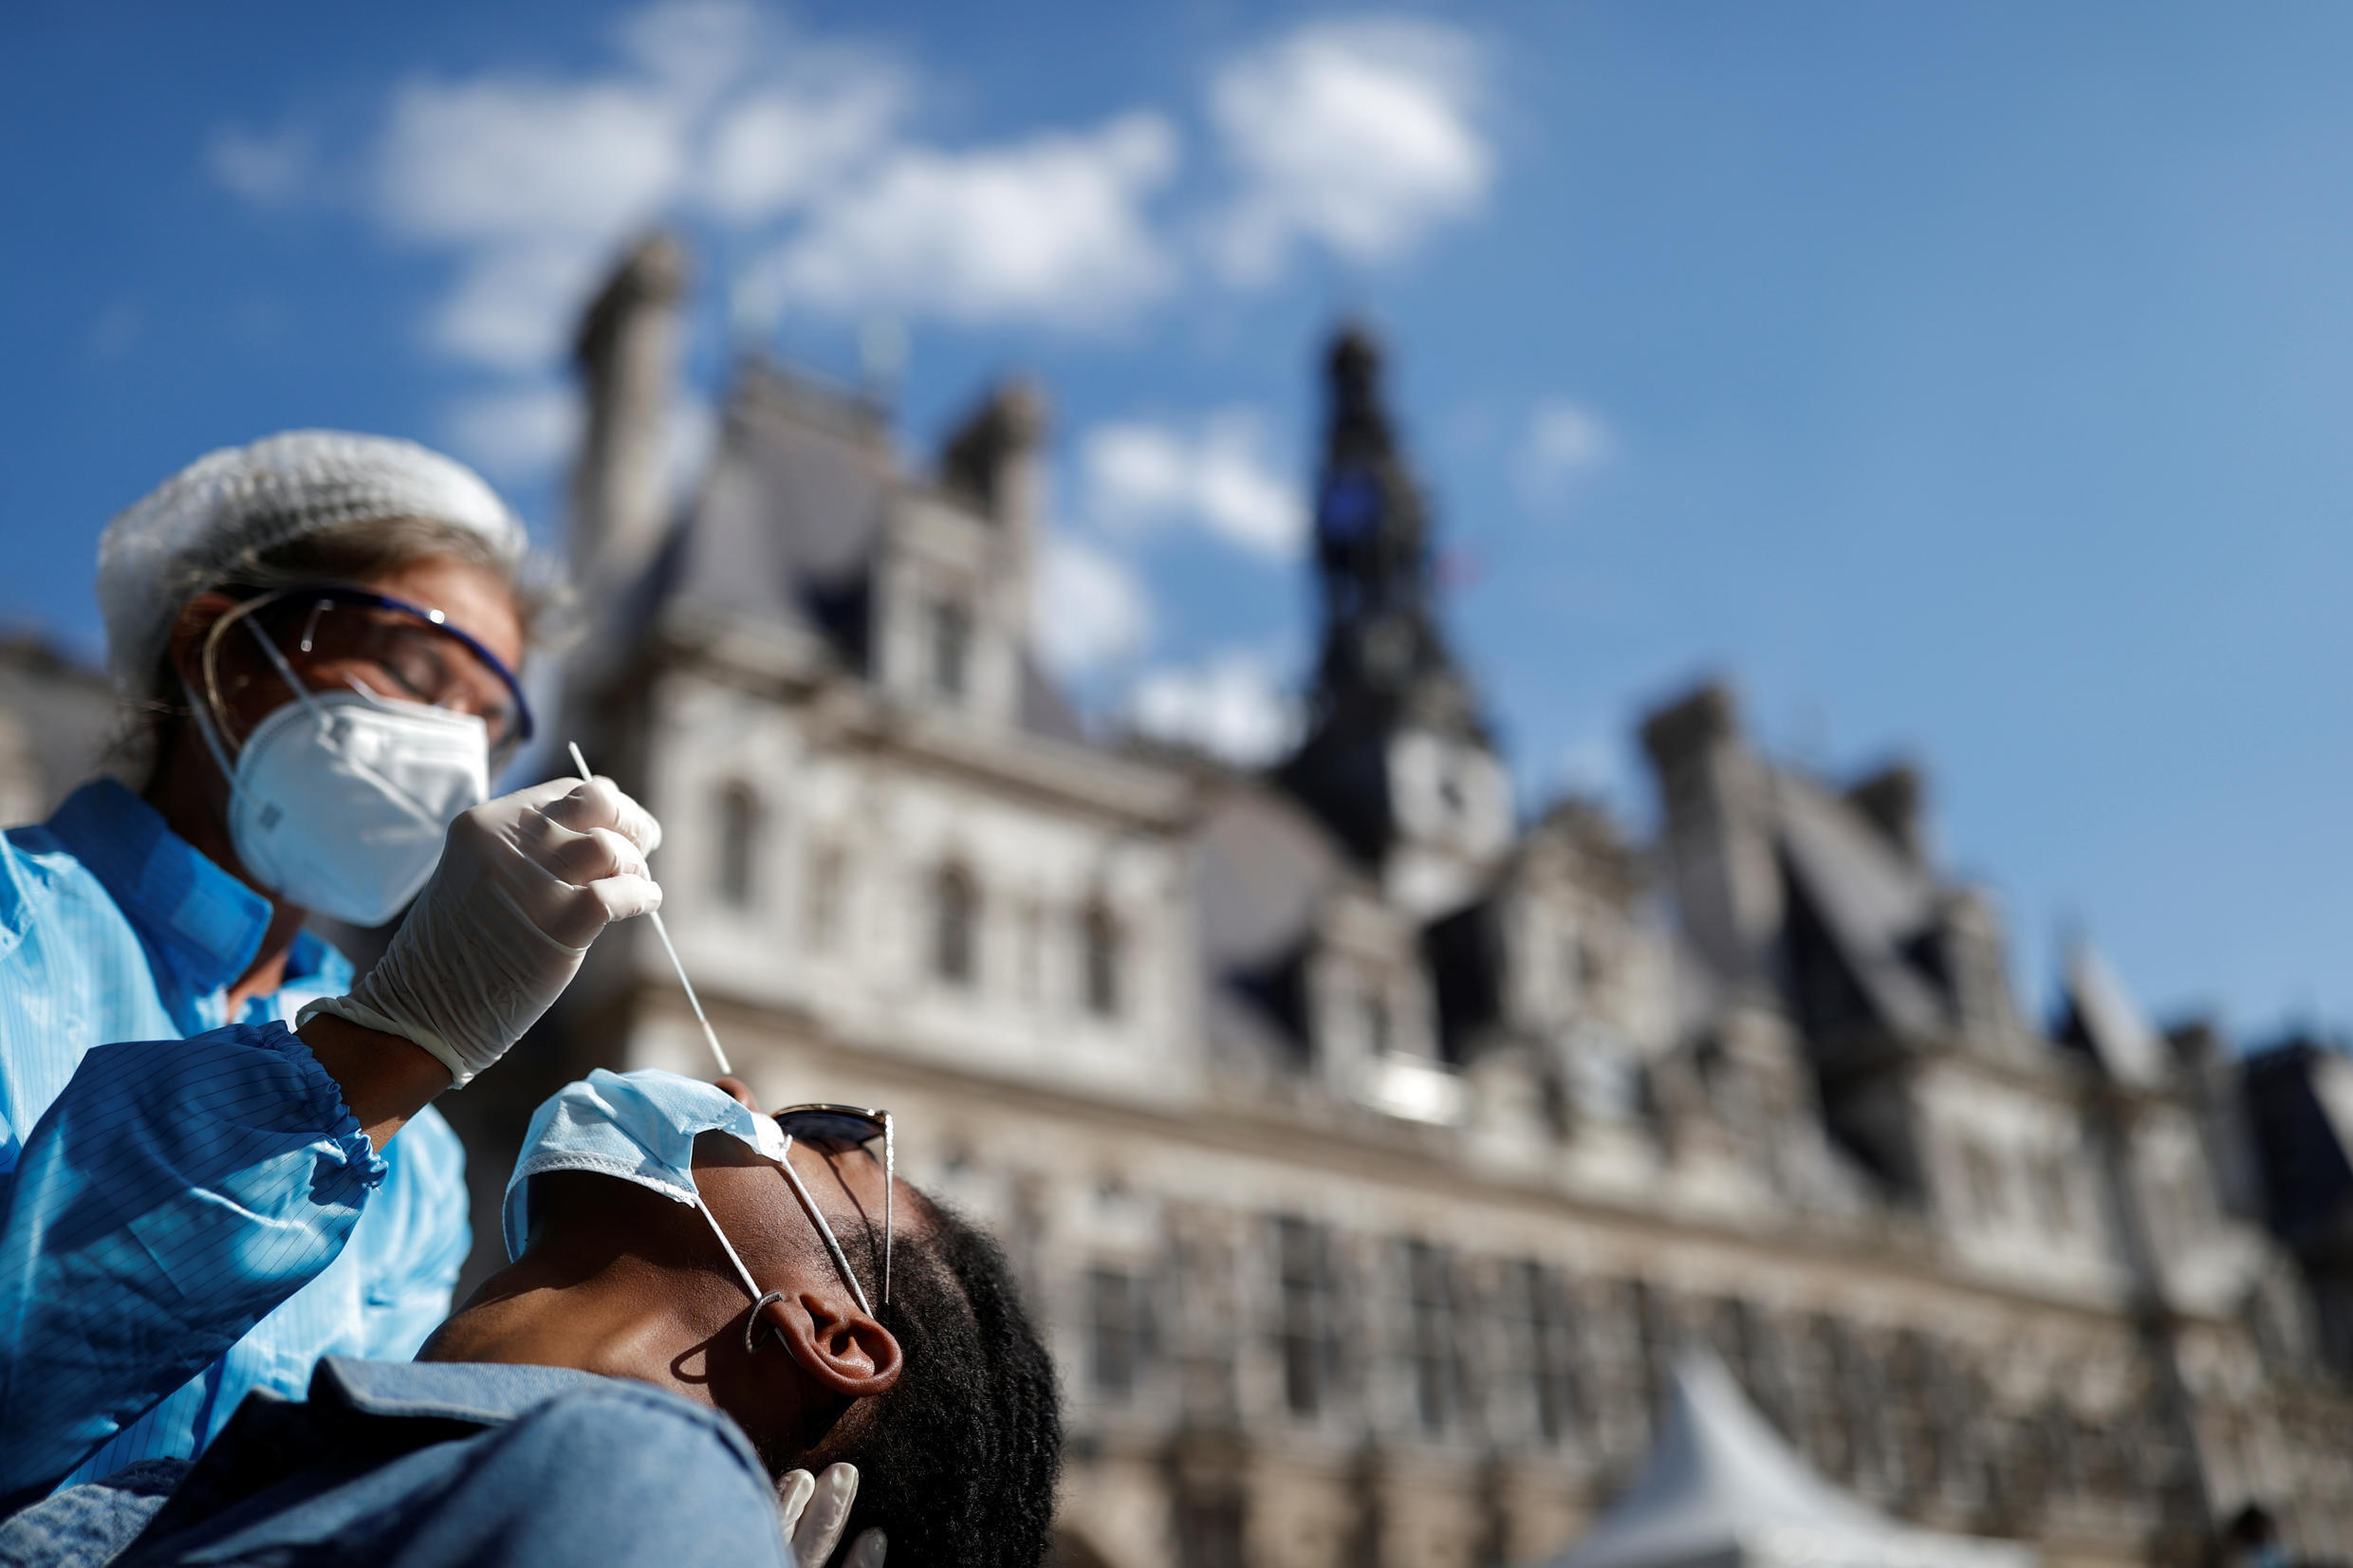 A health worker, wearing a protective suit and a face mask, prepares to administer a nasal swab to a patient at a testing site for Covid-19 installed in front of the city hall in Paris, France, September 2, 2020.